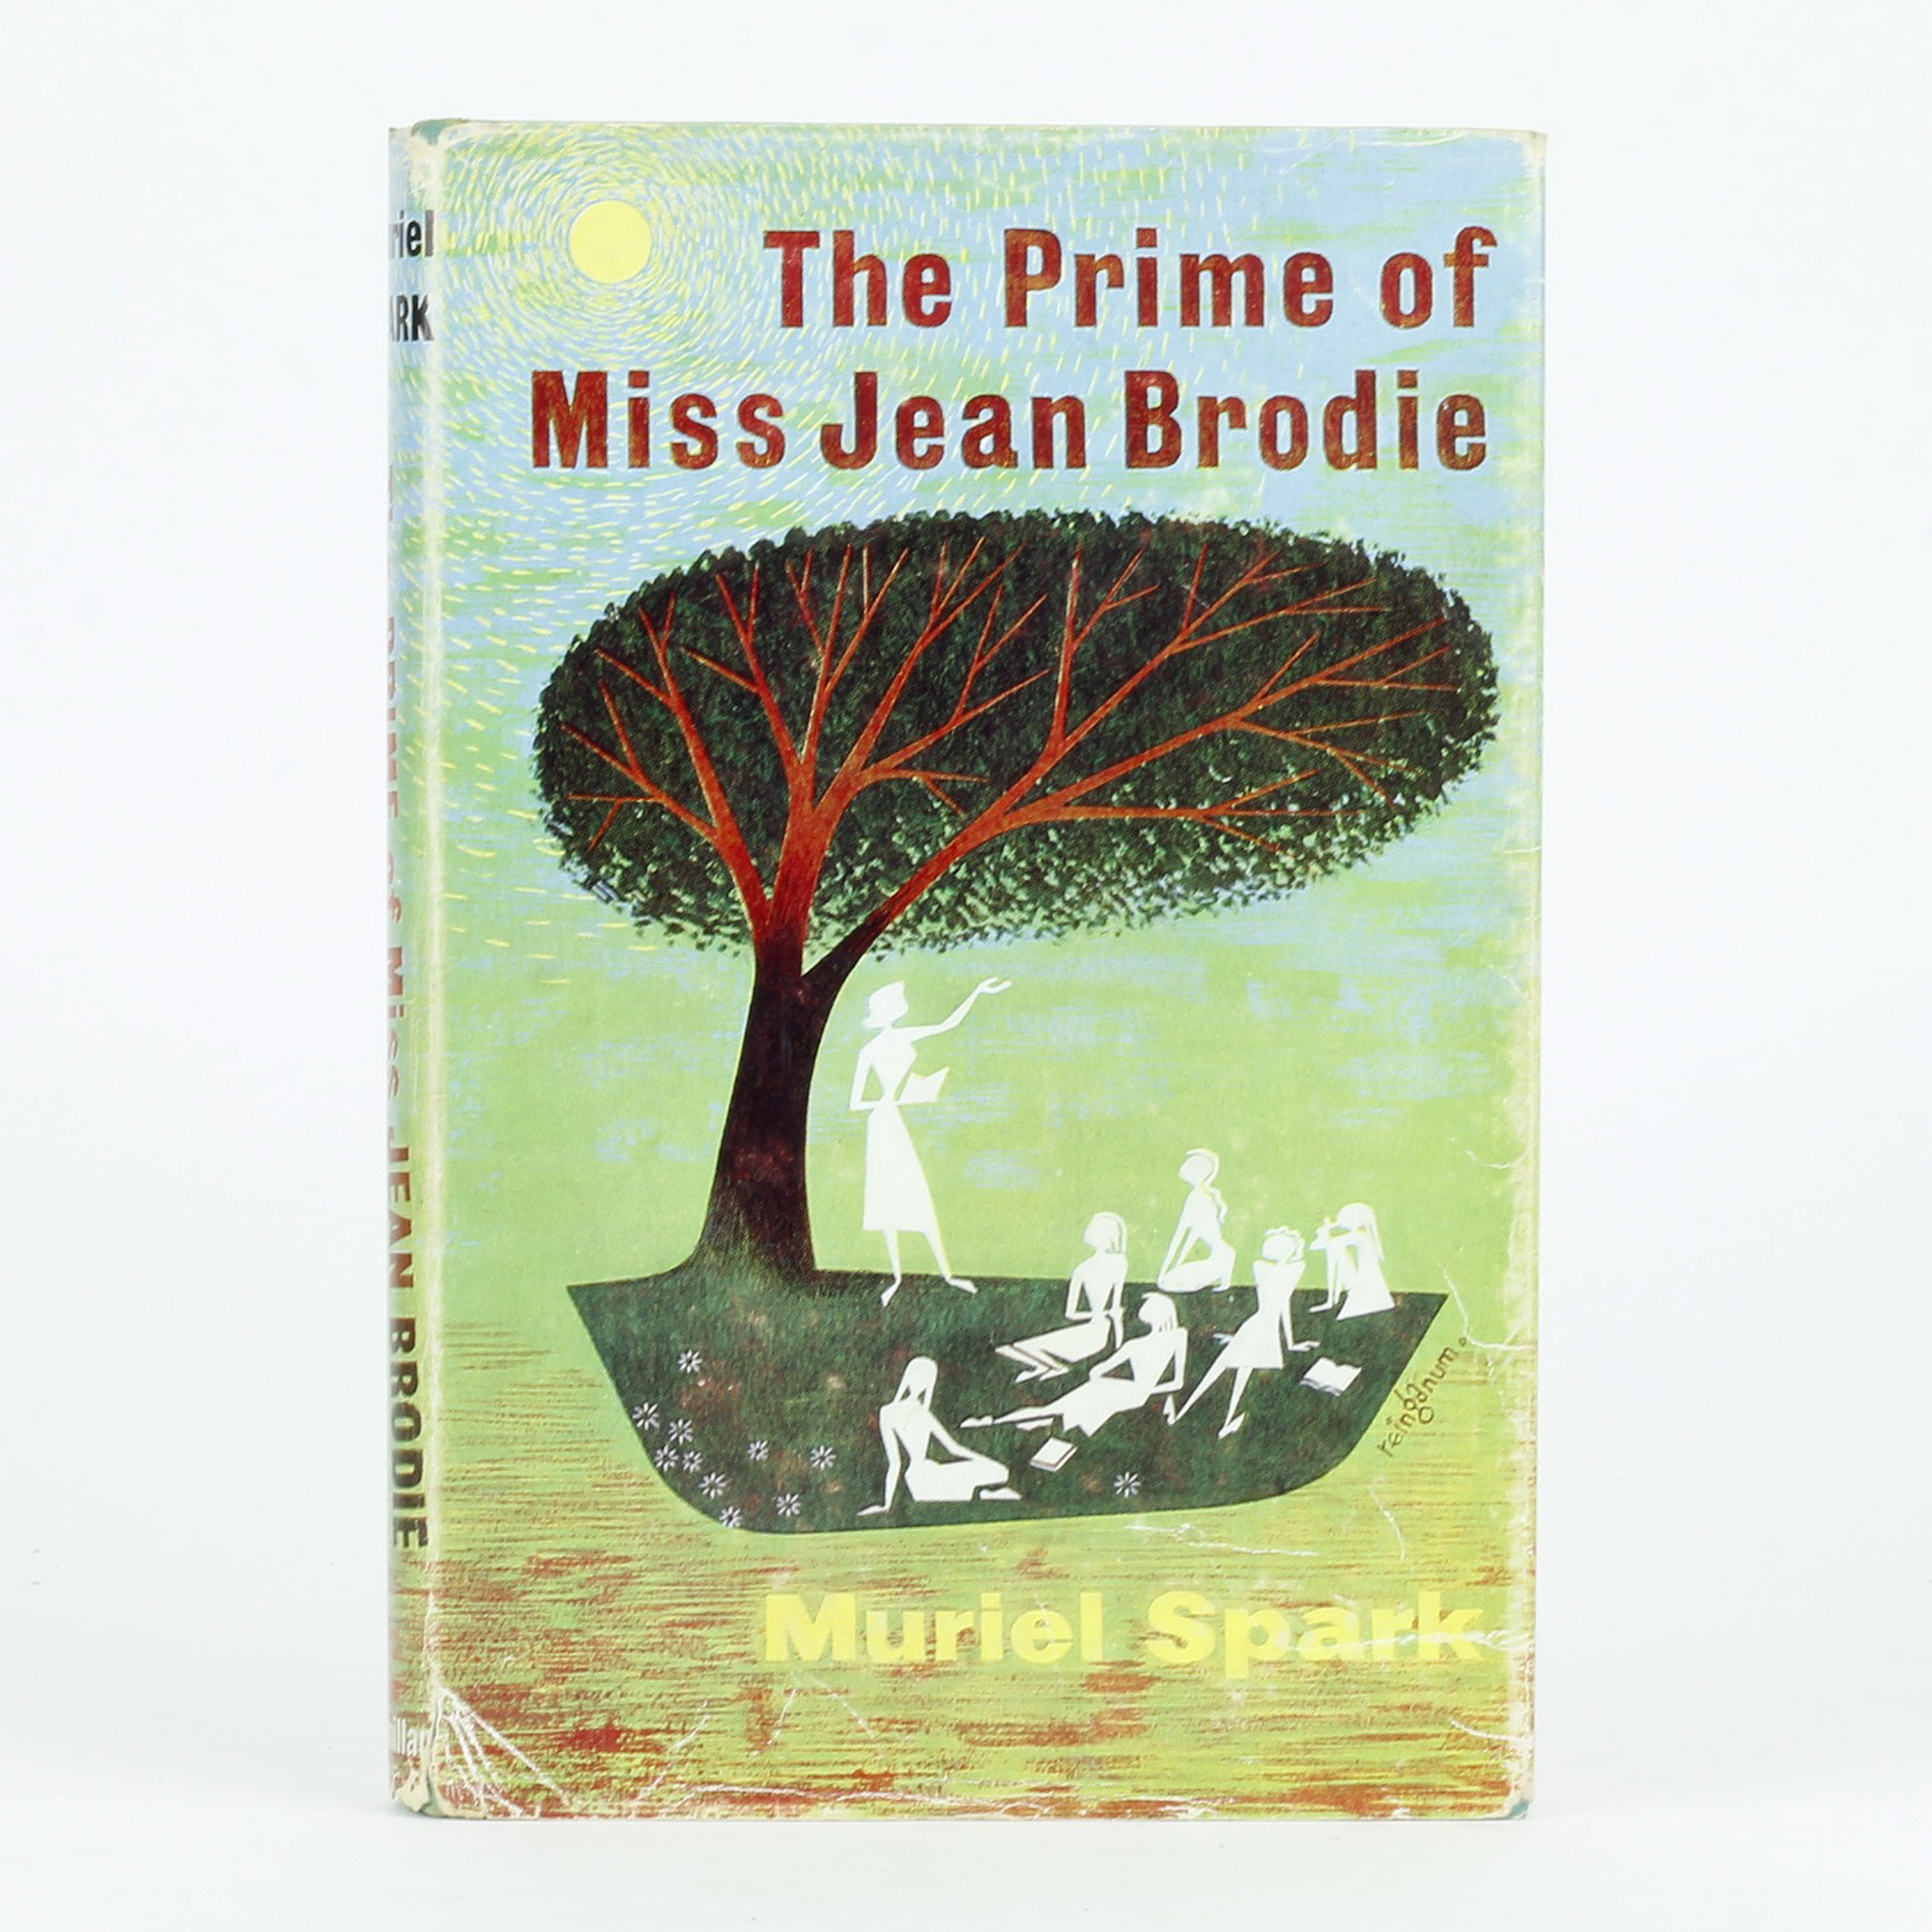 an analysis of the prime of miss jean brodie by muriel spark Muriel spark created one of the funniest and most sinister characters in modern fiction, miss jean brodie.